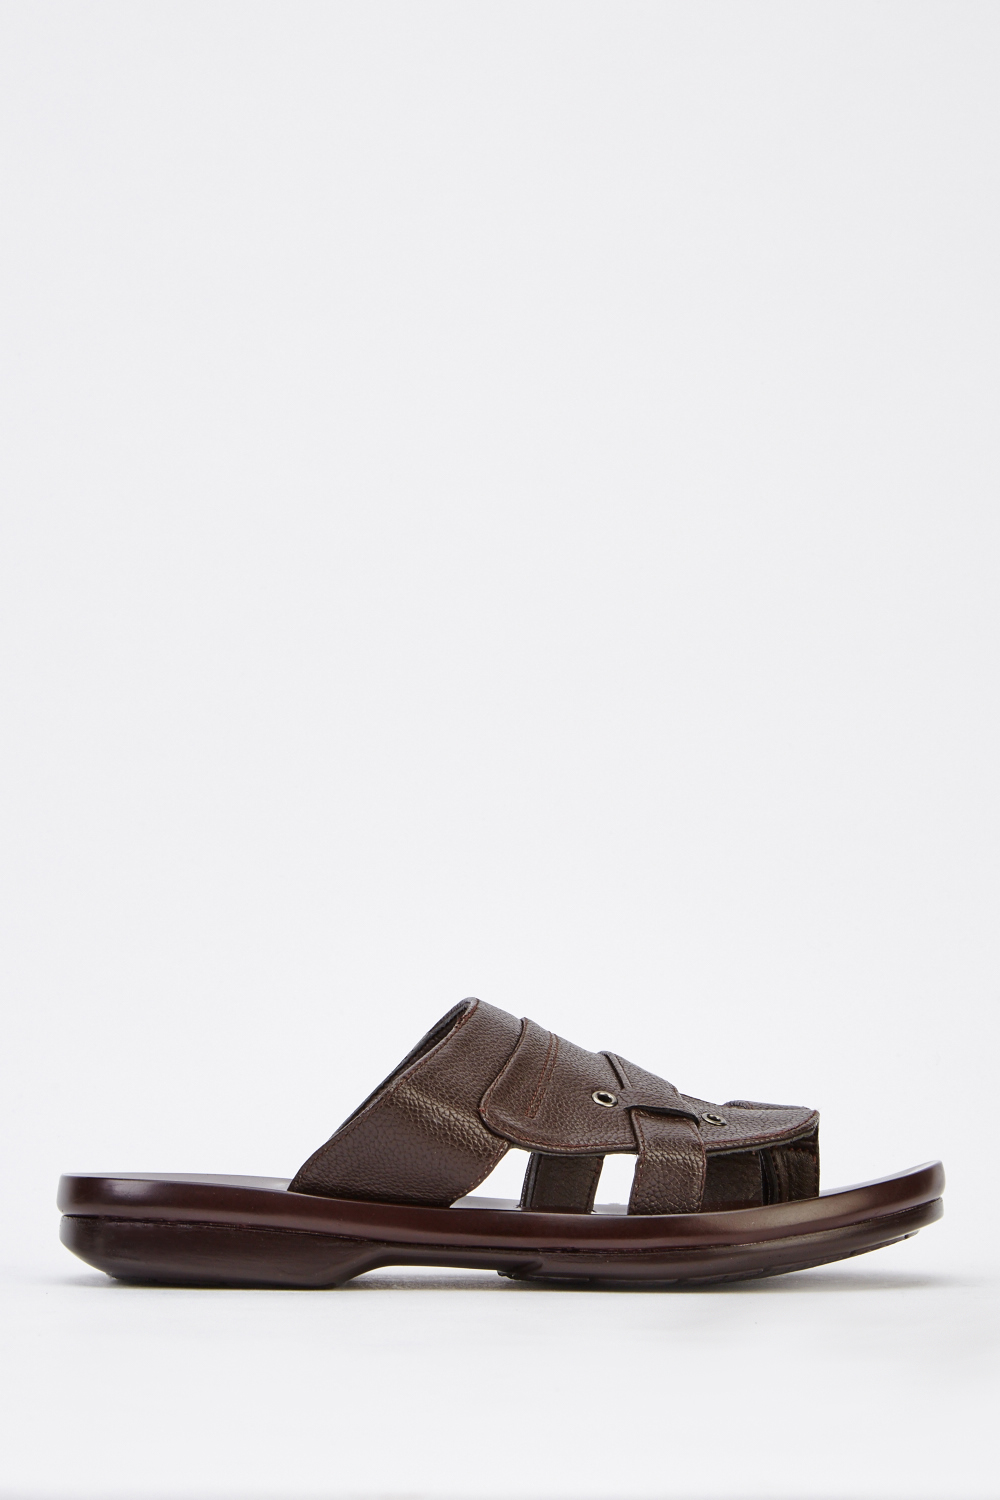 4a793db0f5aac2 Mens Flat Faux Leather Sandals - Brown - Just £5